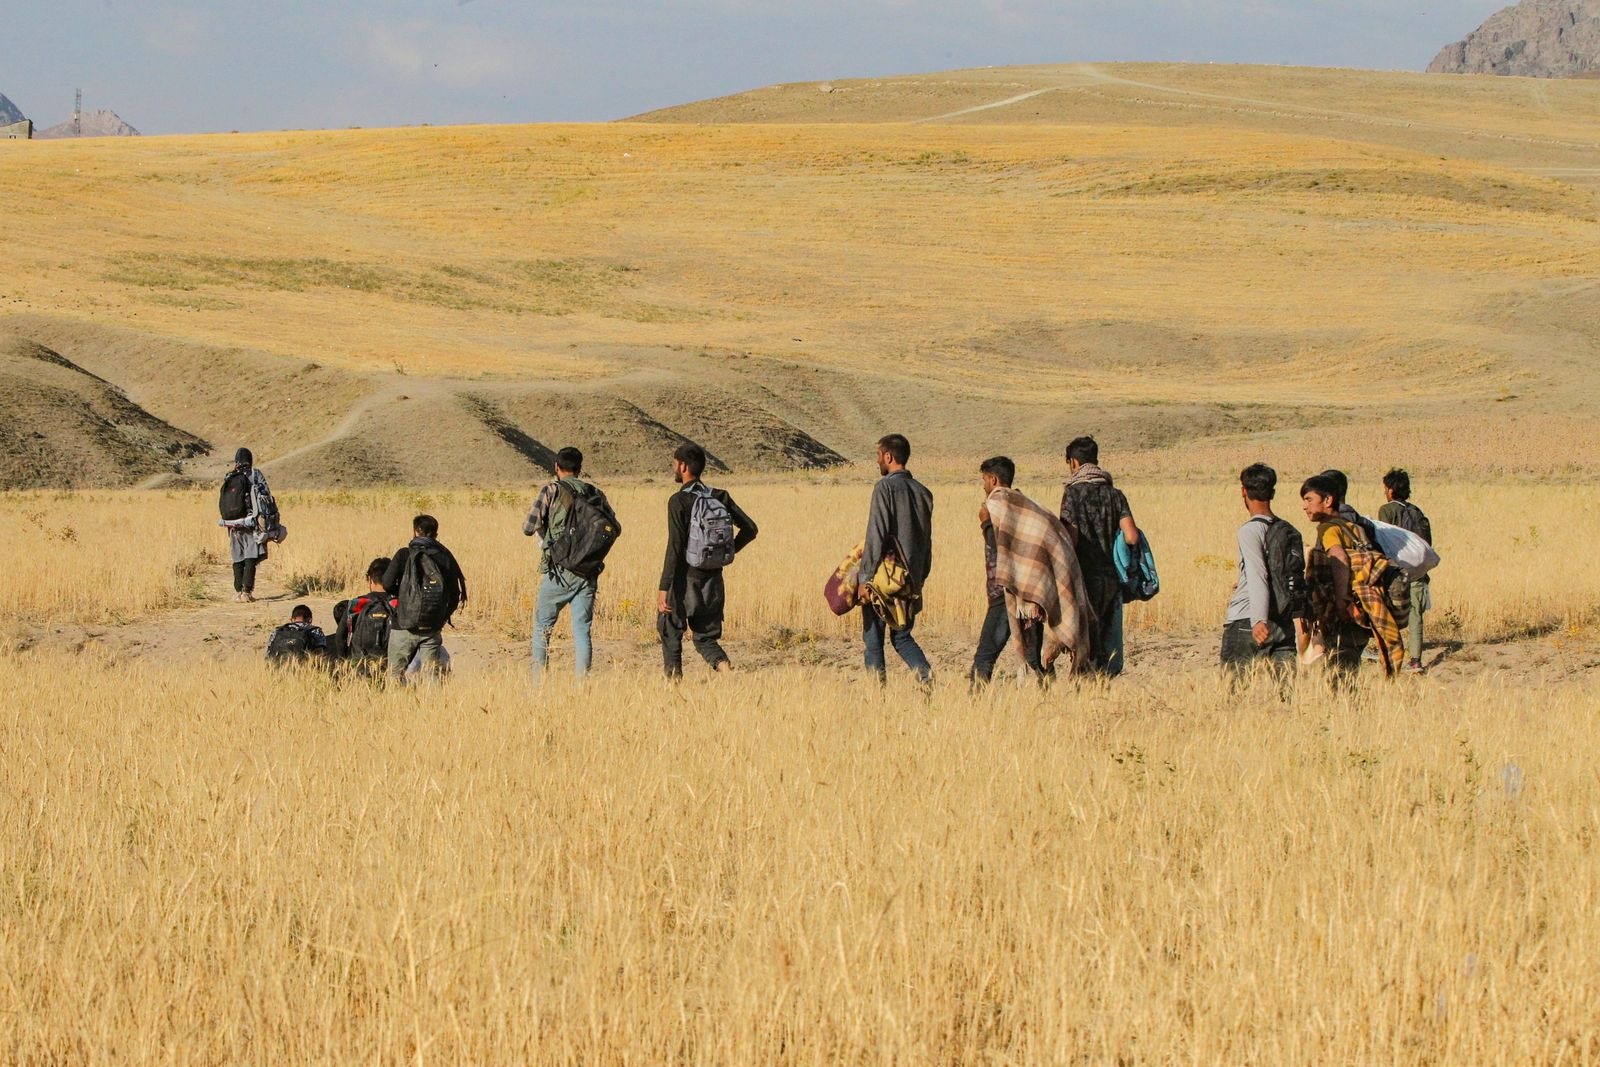 Afghan irregular migrants claim Iranian soldiers beat and leave them at Turkish border